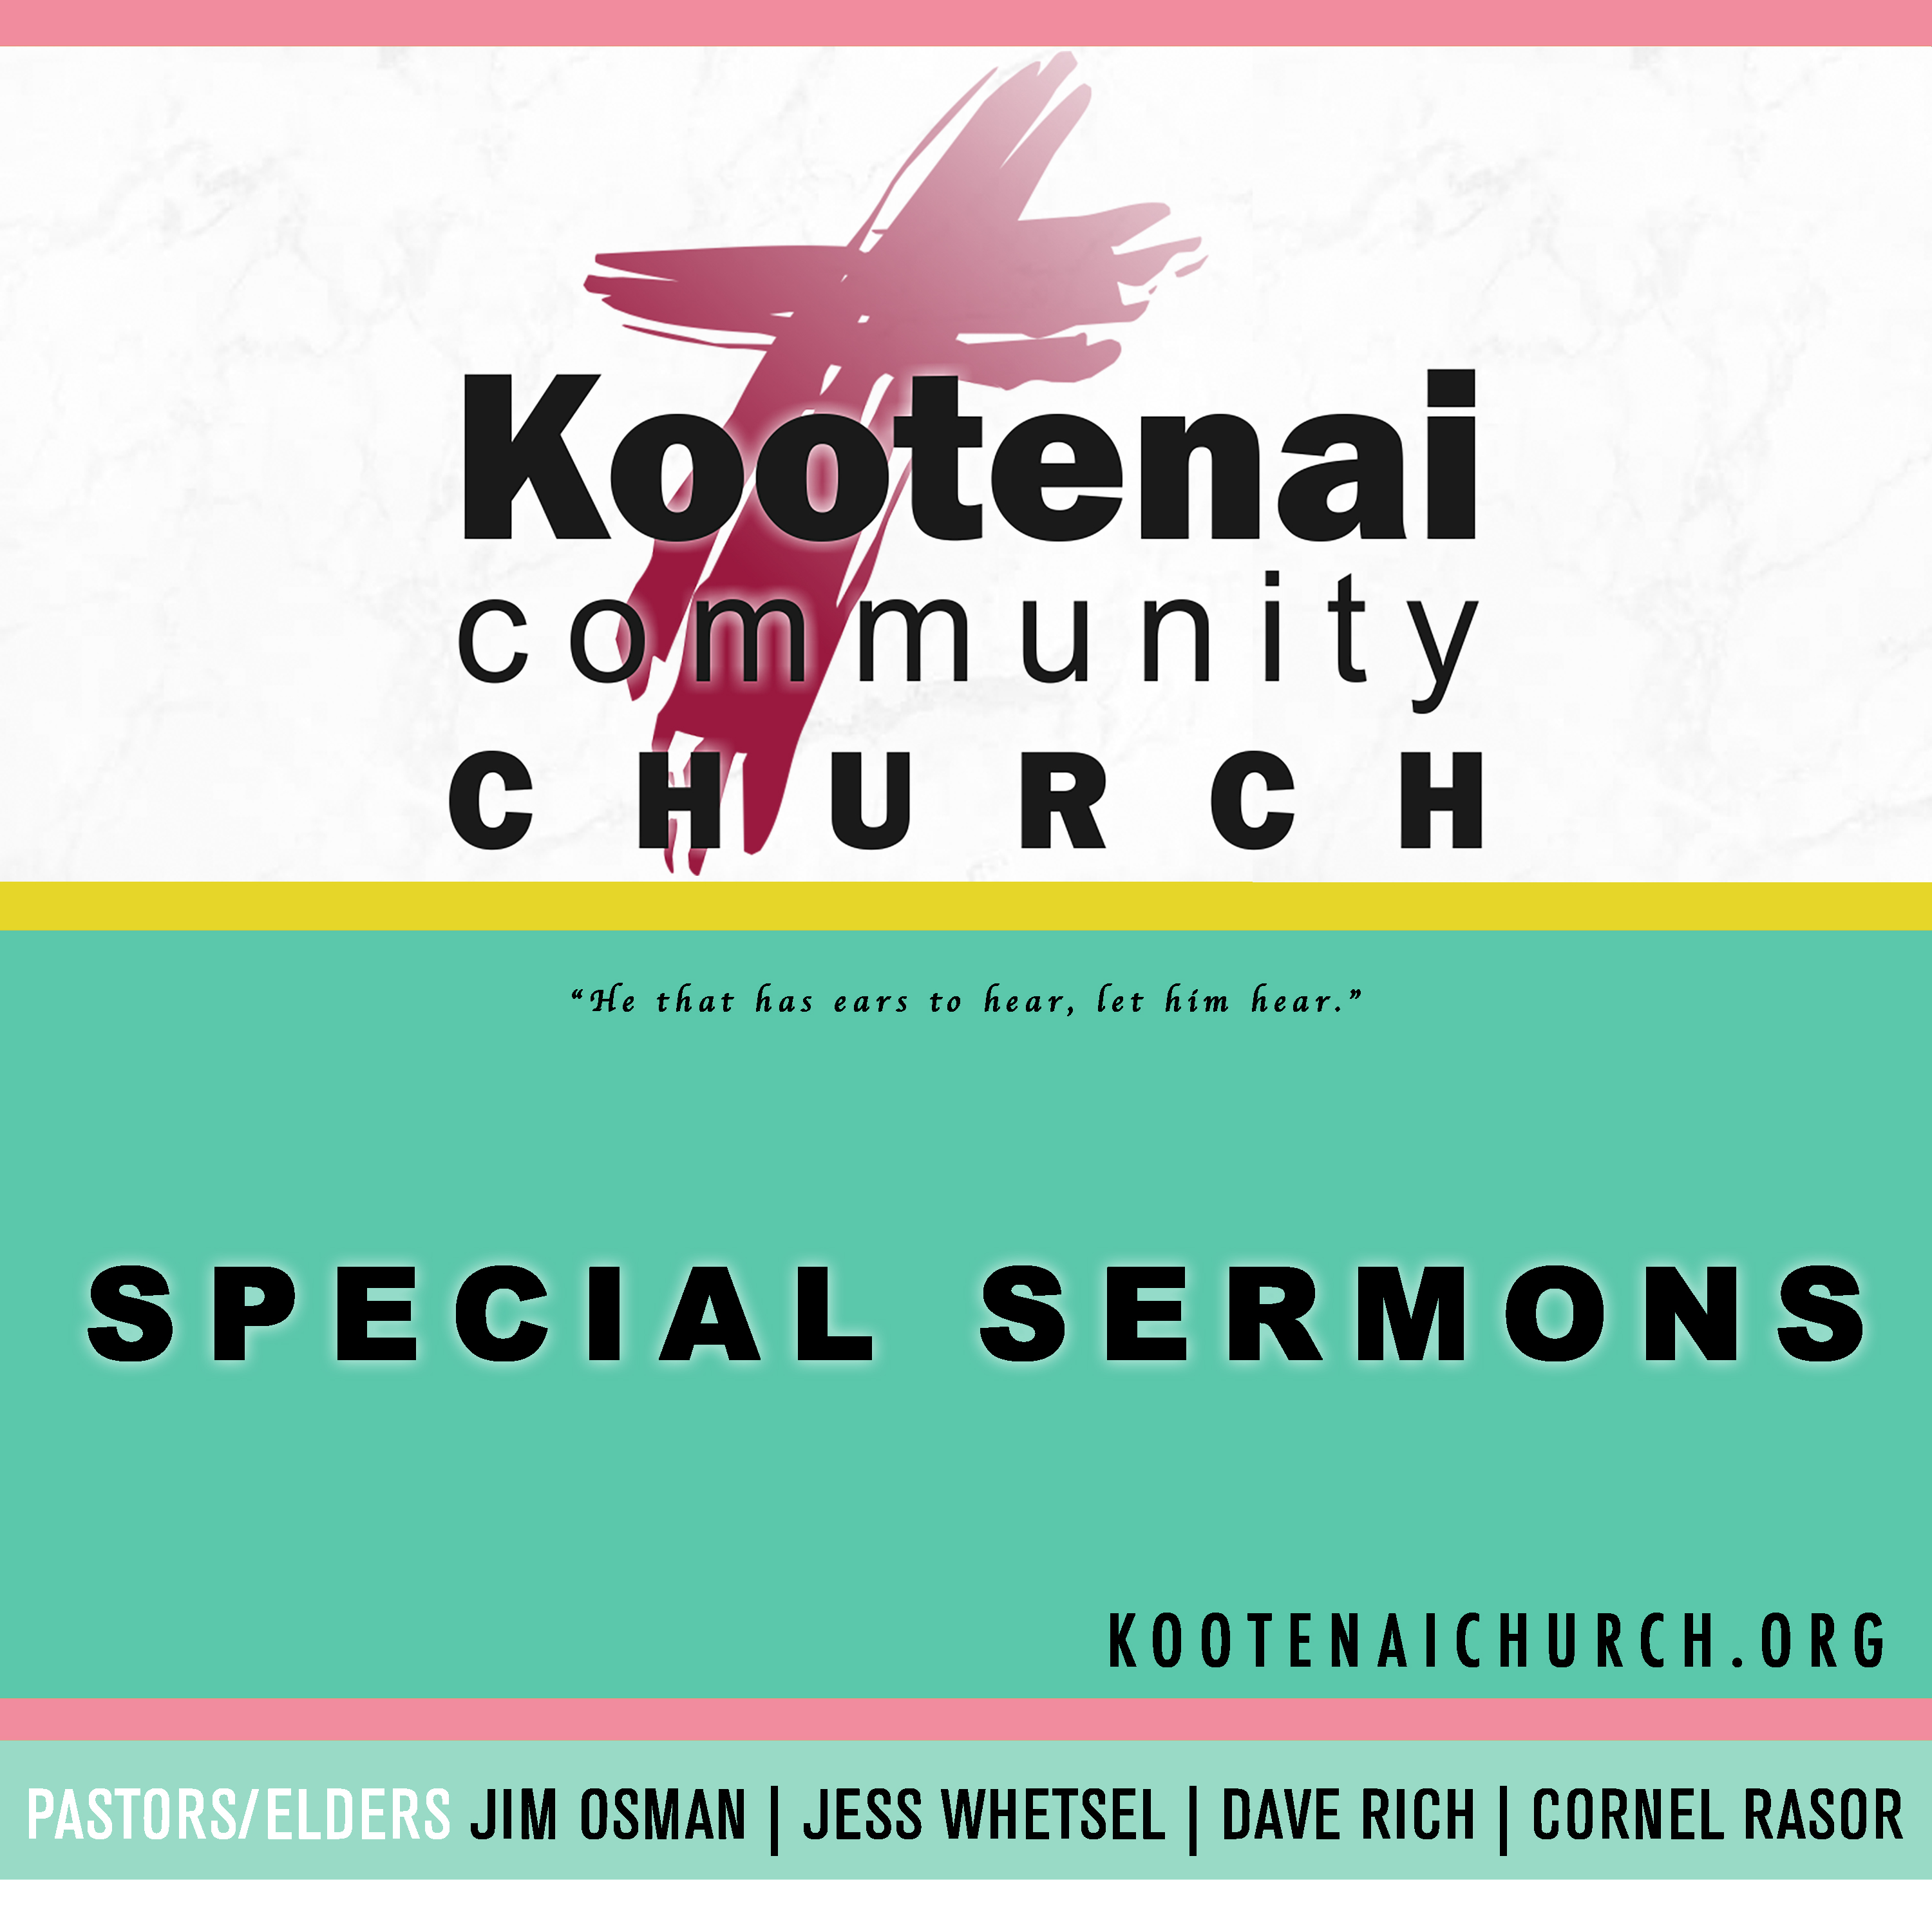 Kootenai Church: Special Sermons